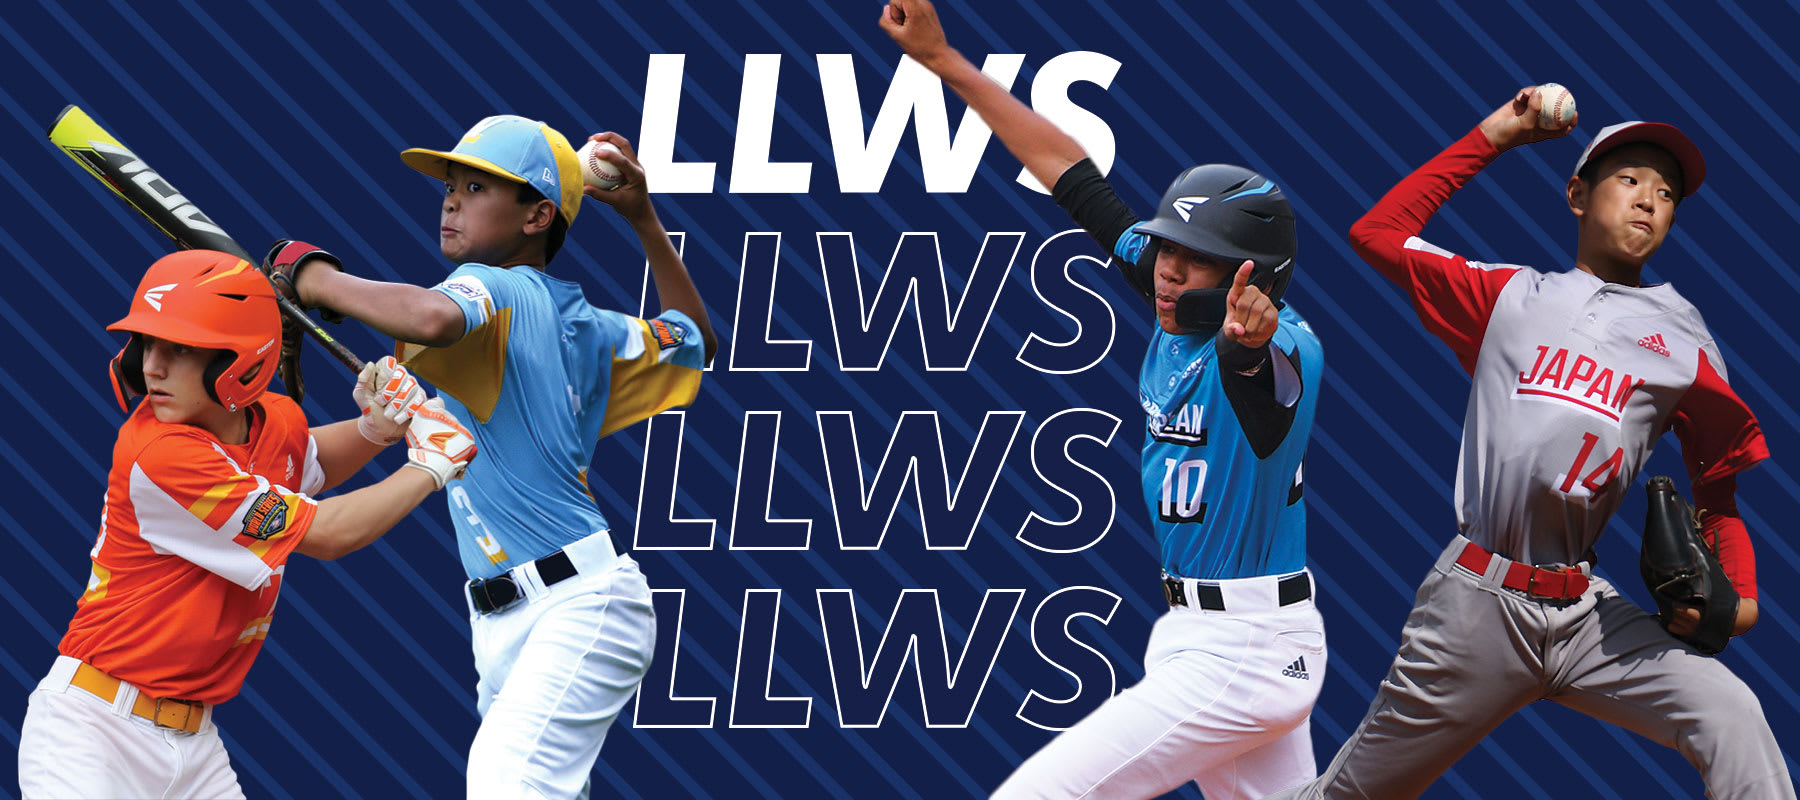 final-four-graphic-llbws-2019